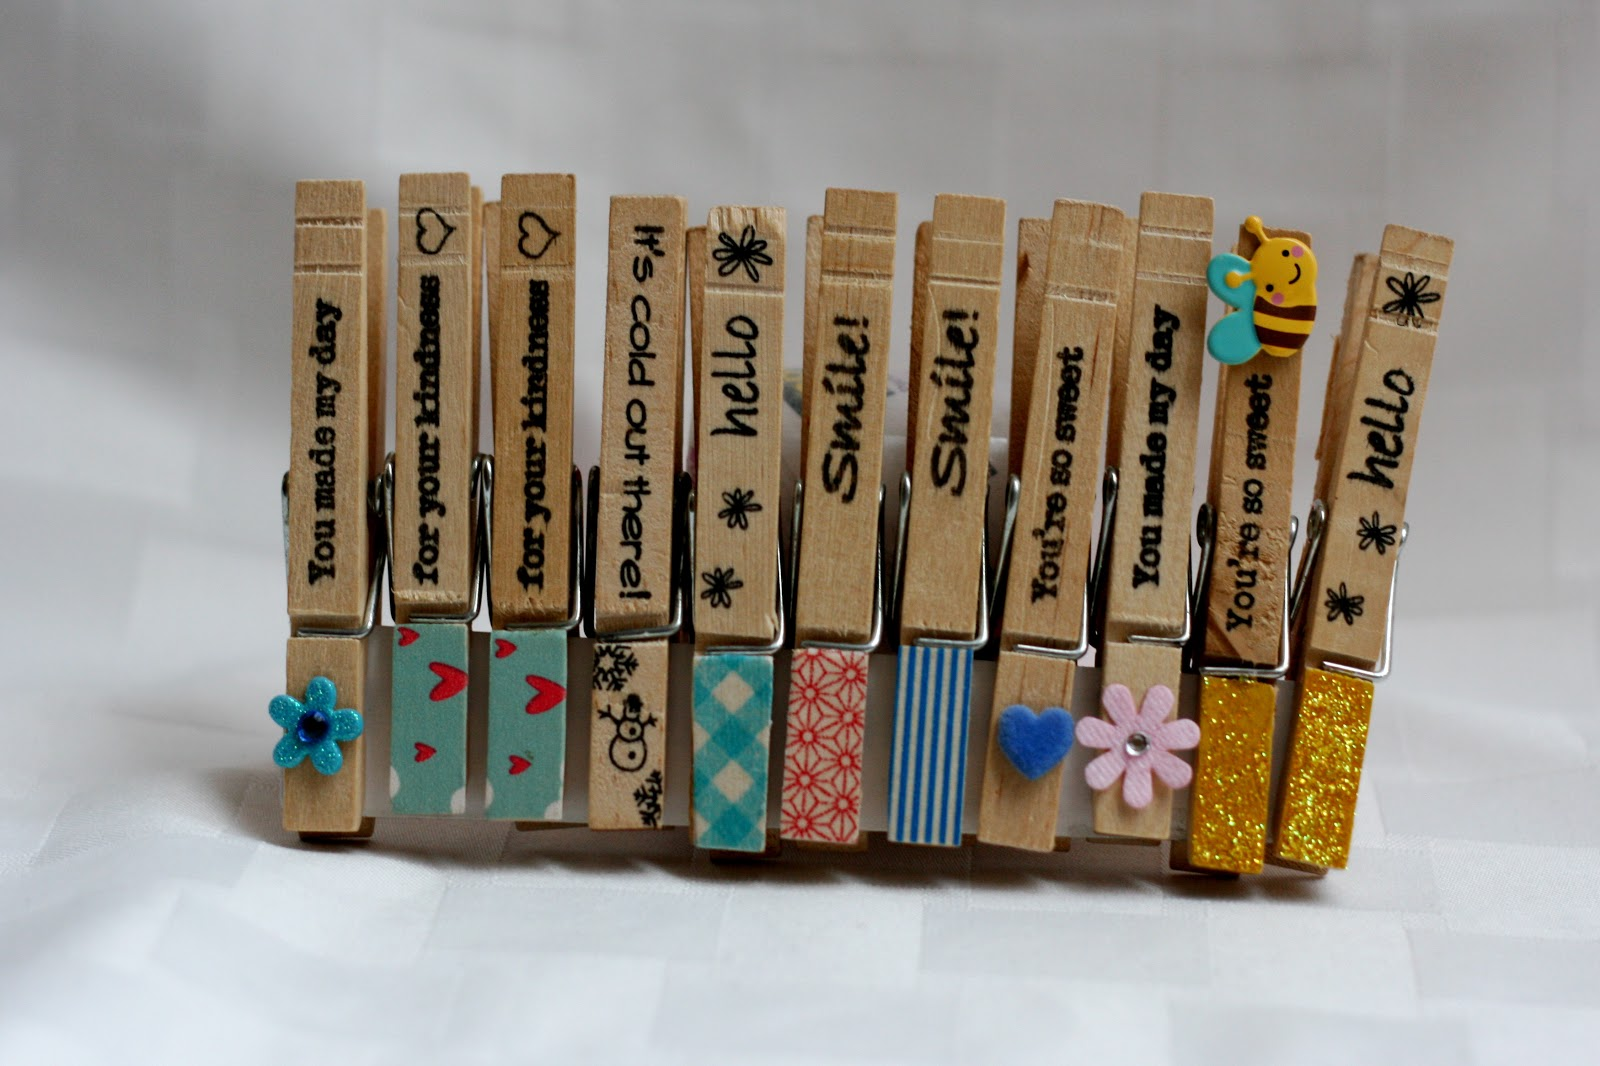 Uncategorized Decorating Clothespins rock paper cricut january 2013 i had  so much fun decorating clothespins that